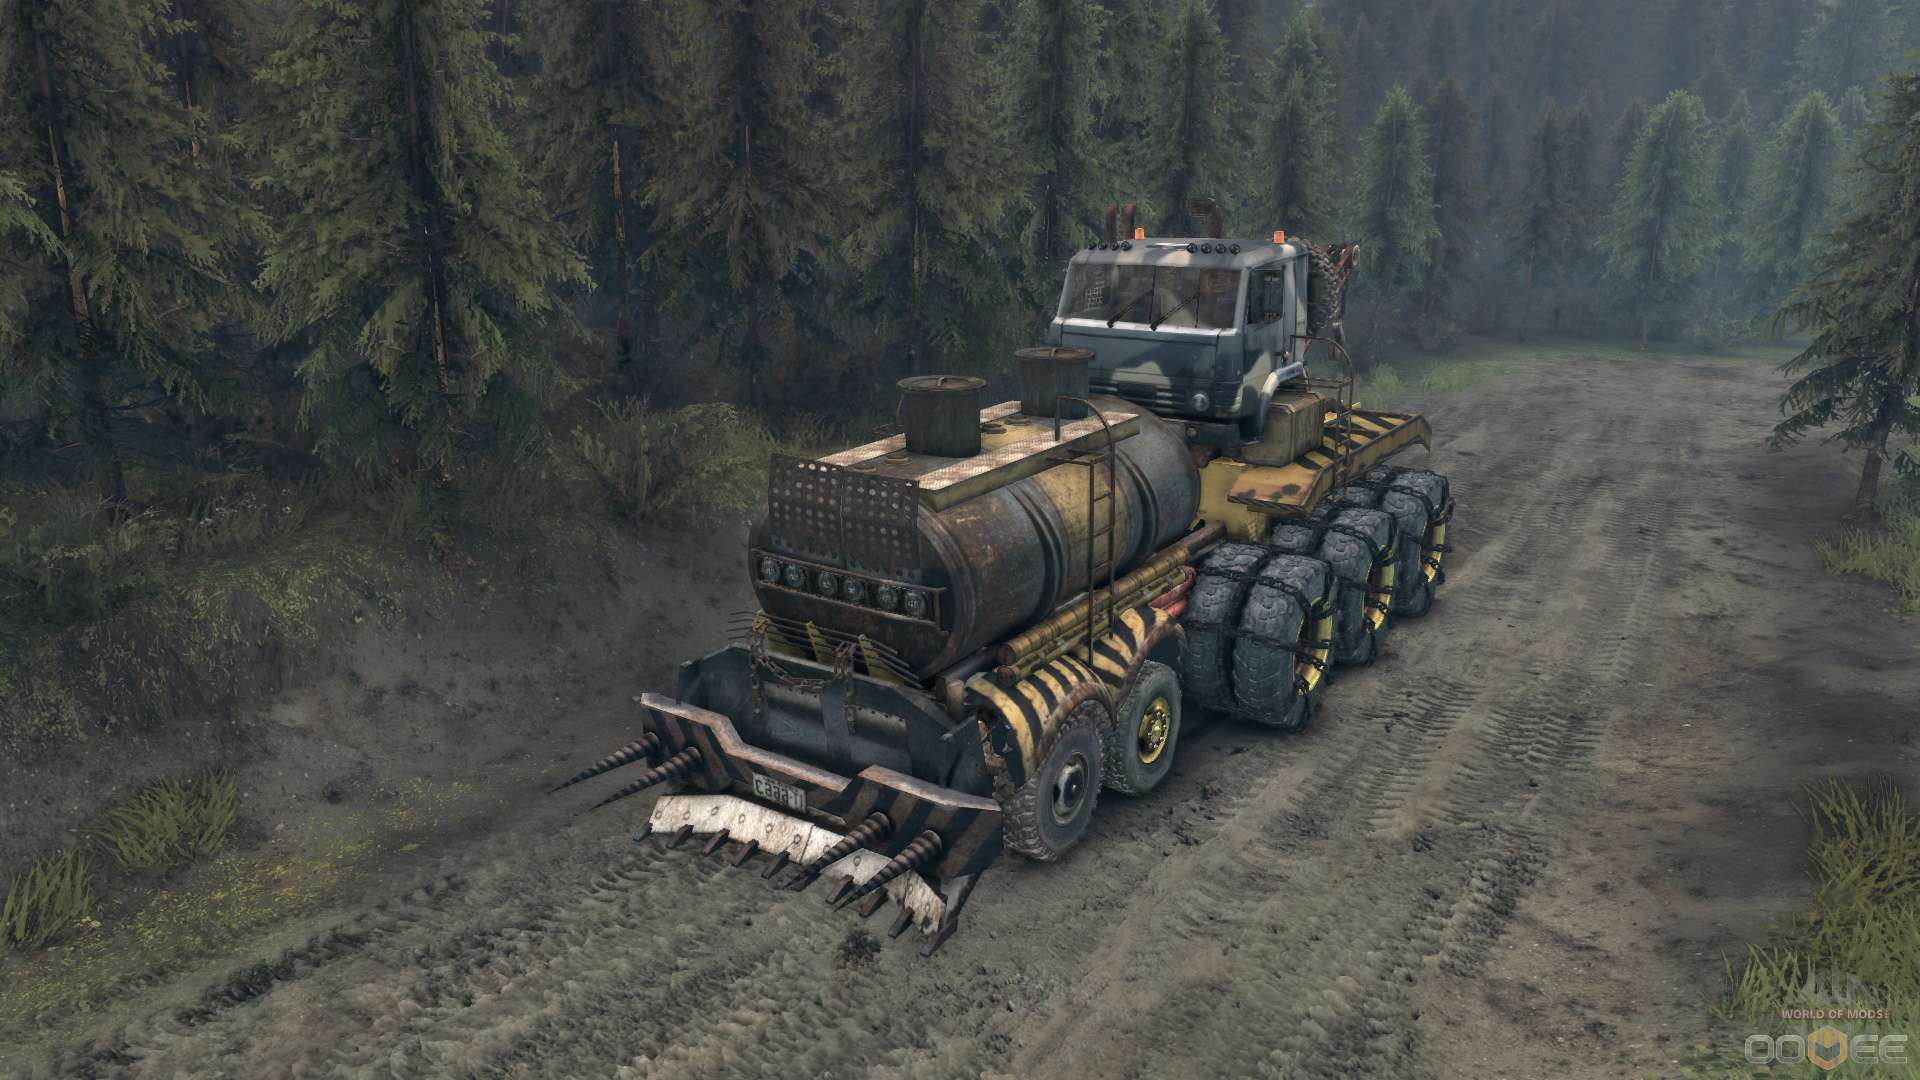 21 Games Like Spintires for Android Games Like Spintires - Free Download